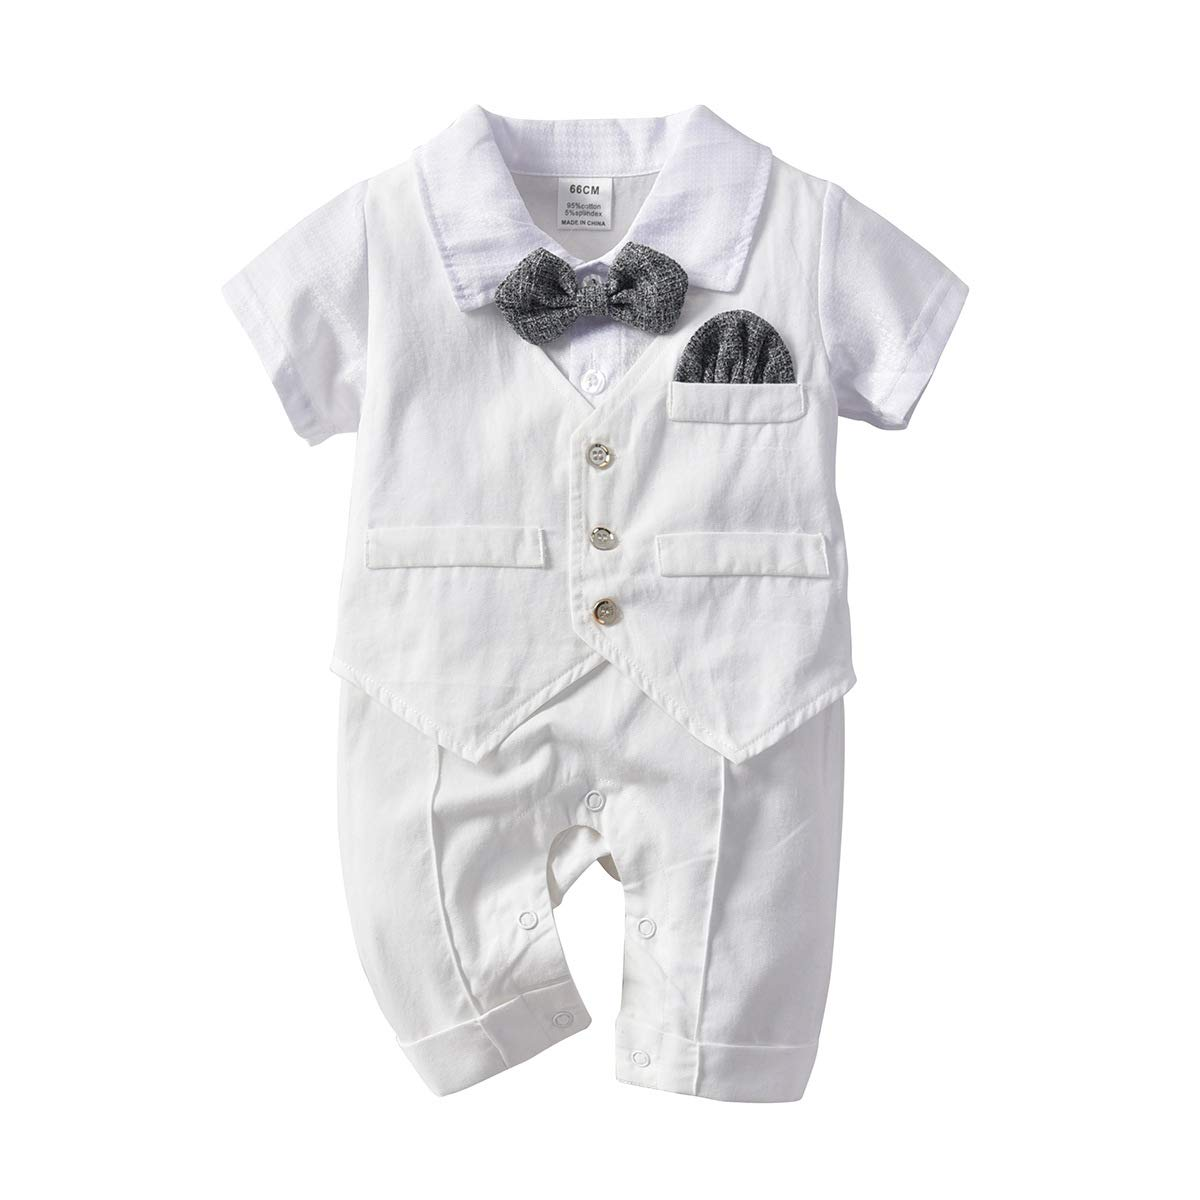 Newborn Short Sleeves Jumpsuit Overall Outfit Baby Boy Gentleman Romper with Tuxedo Bowtie